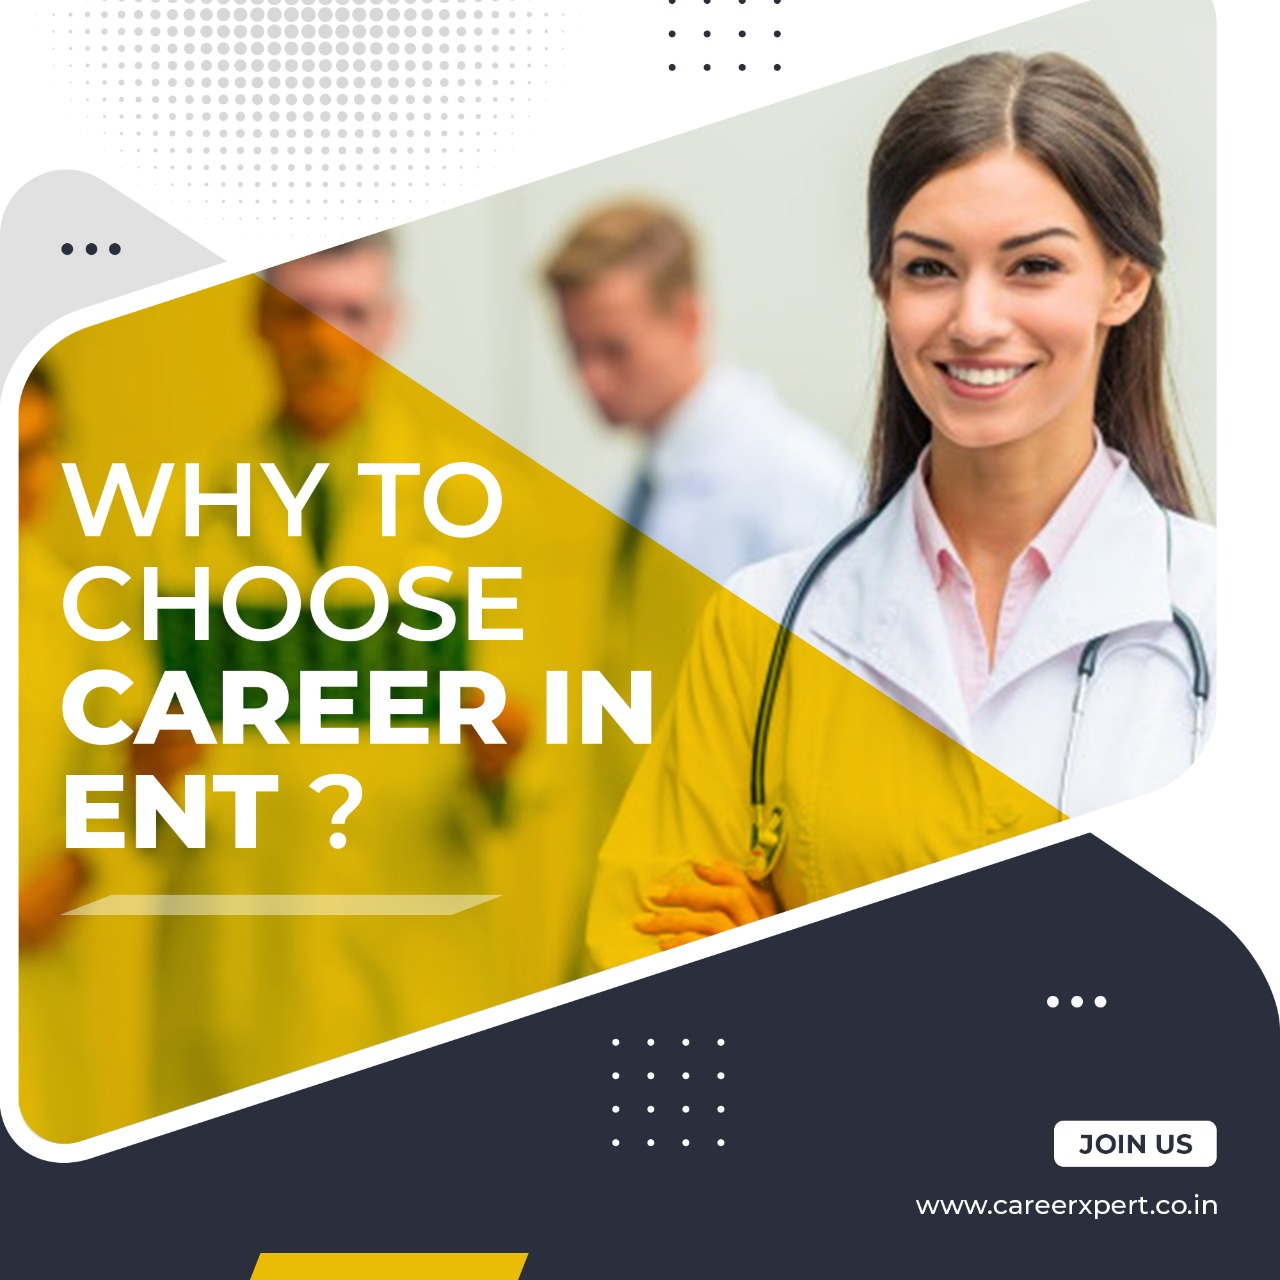 WHY TO CHOOSE CAREER IN ENT